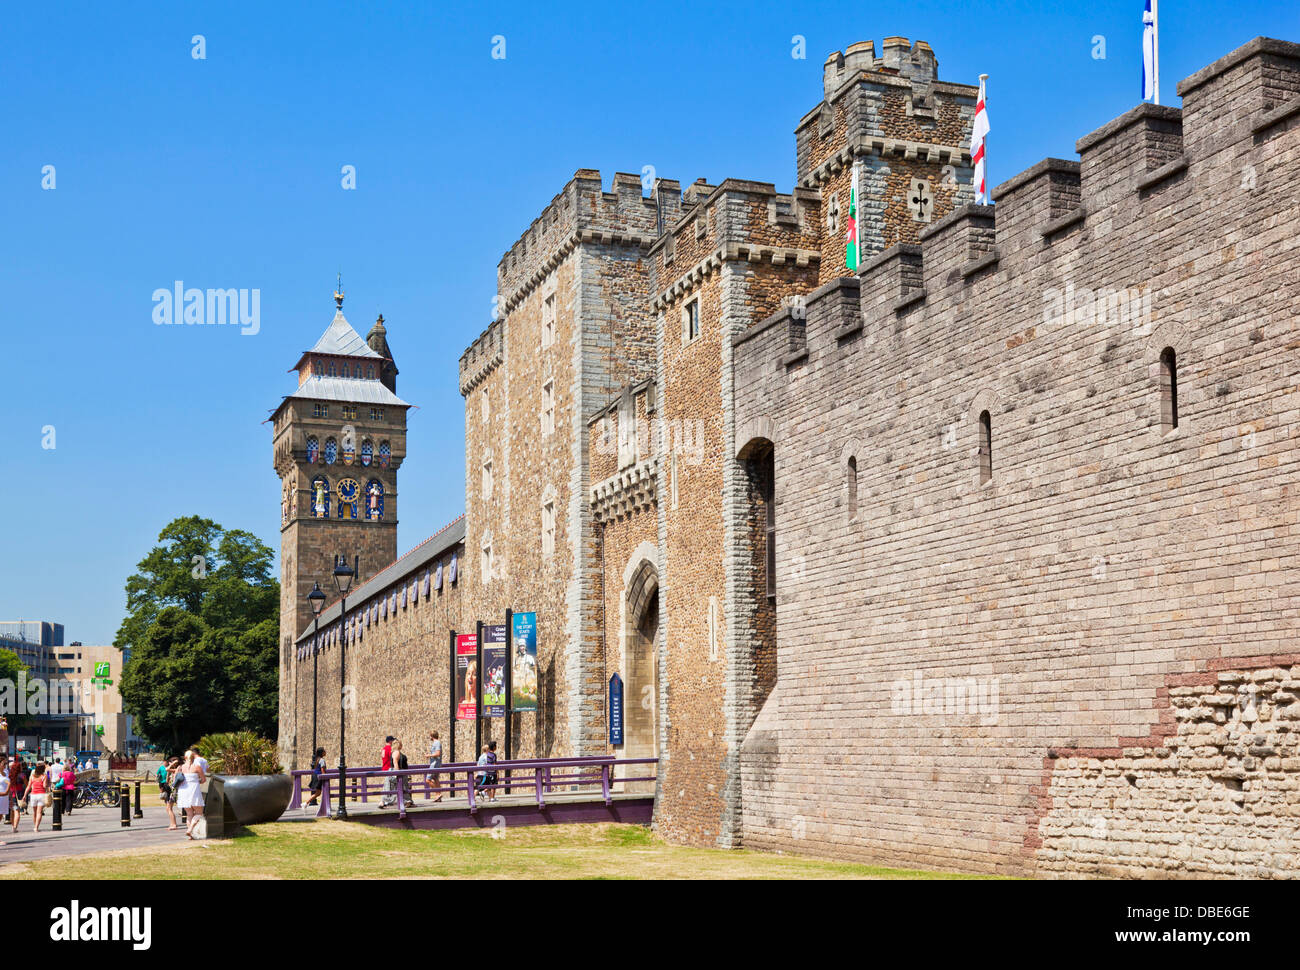 South gate entrance of Cardiff castle Cardiff city centre South Glamorgan South Wales GB UK EU Europe - Stock Image